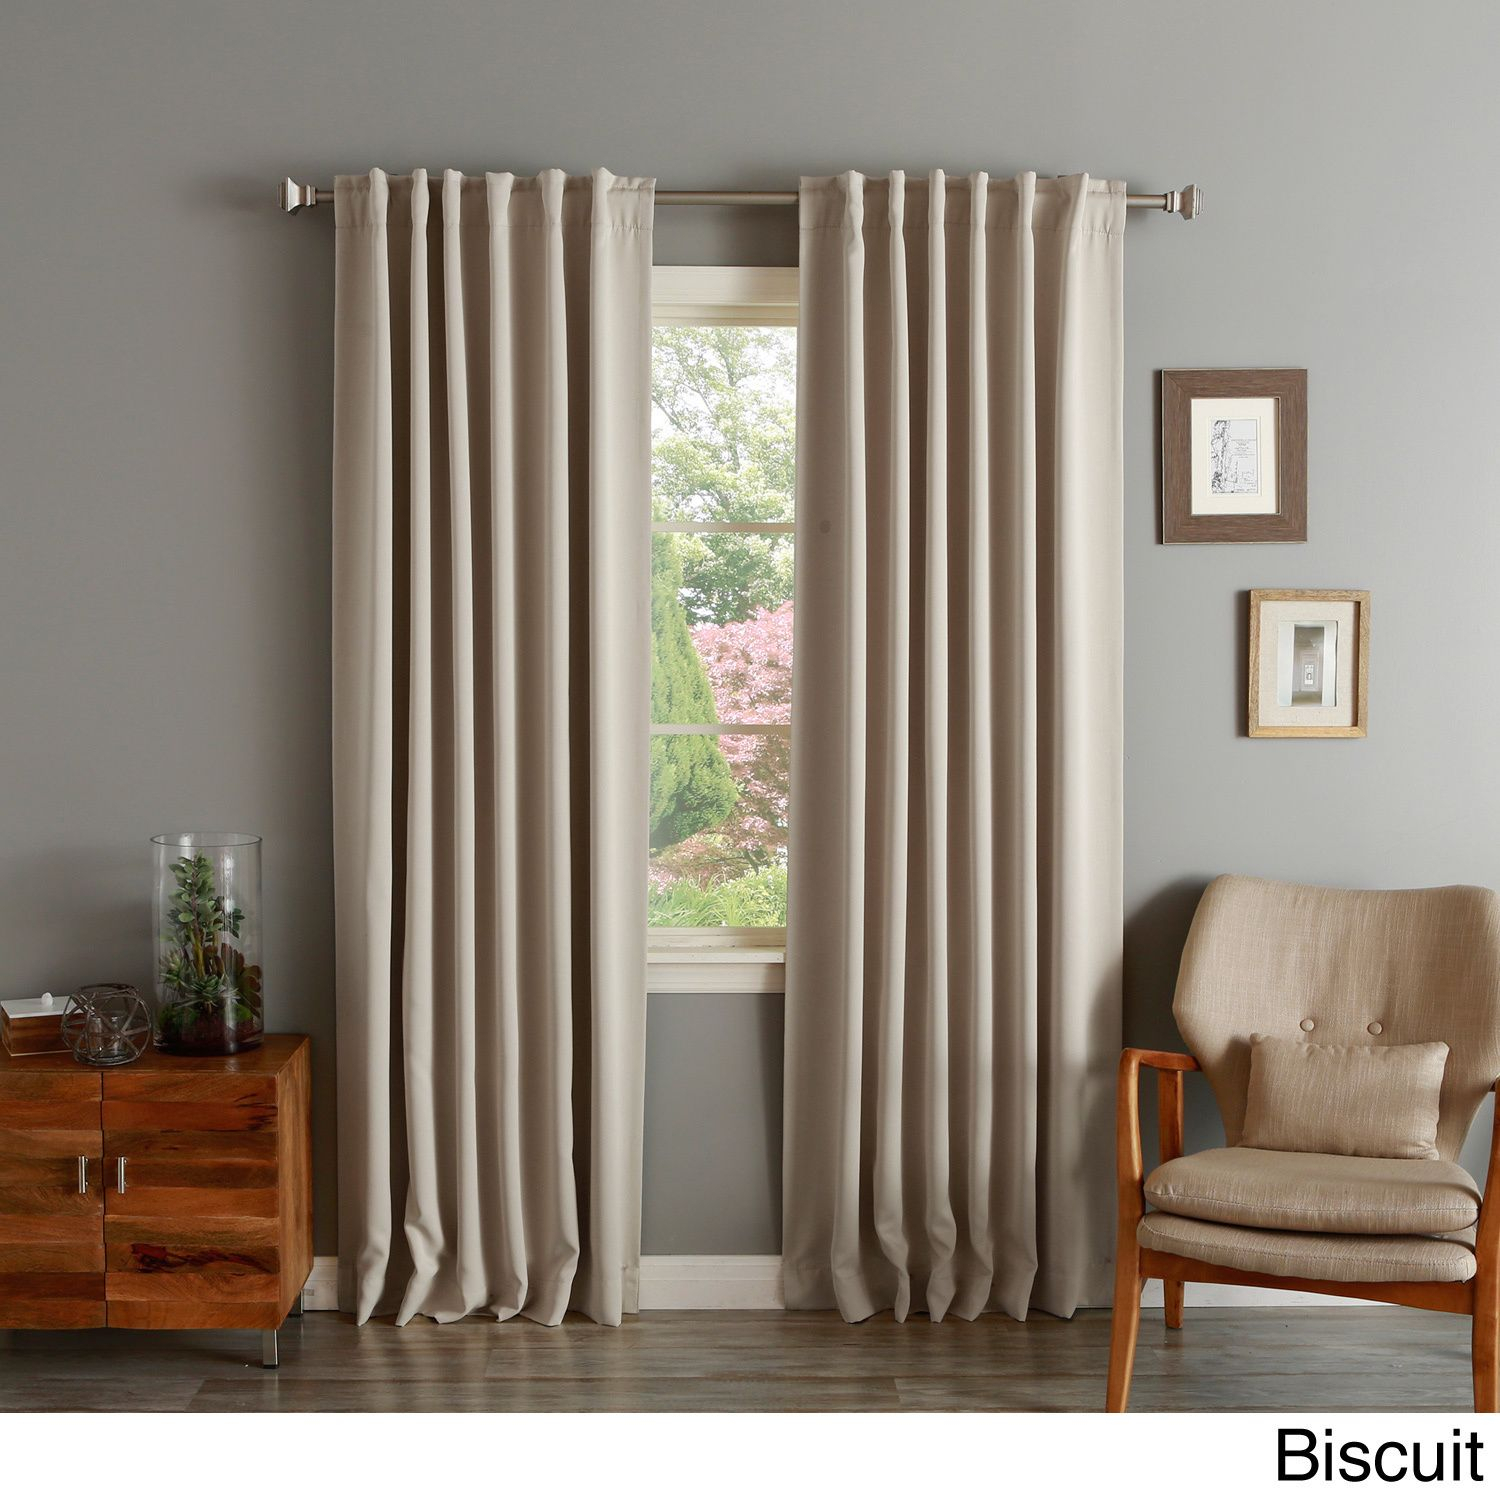 Solid Insulated Thermal Blackout Curtain Panel Pair In 2019 Regarding Julia Striped Room Darkening Window Curtain Panel Pairs (View 4 of 20)